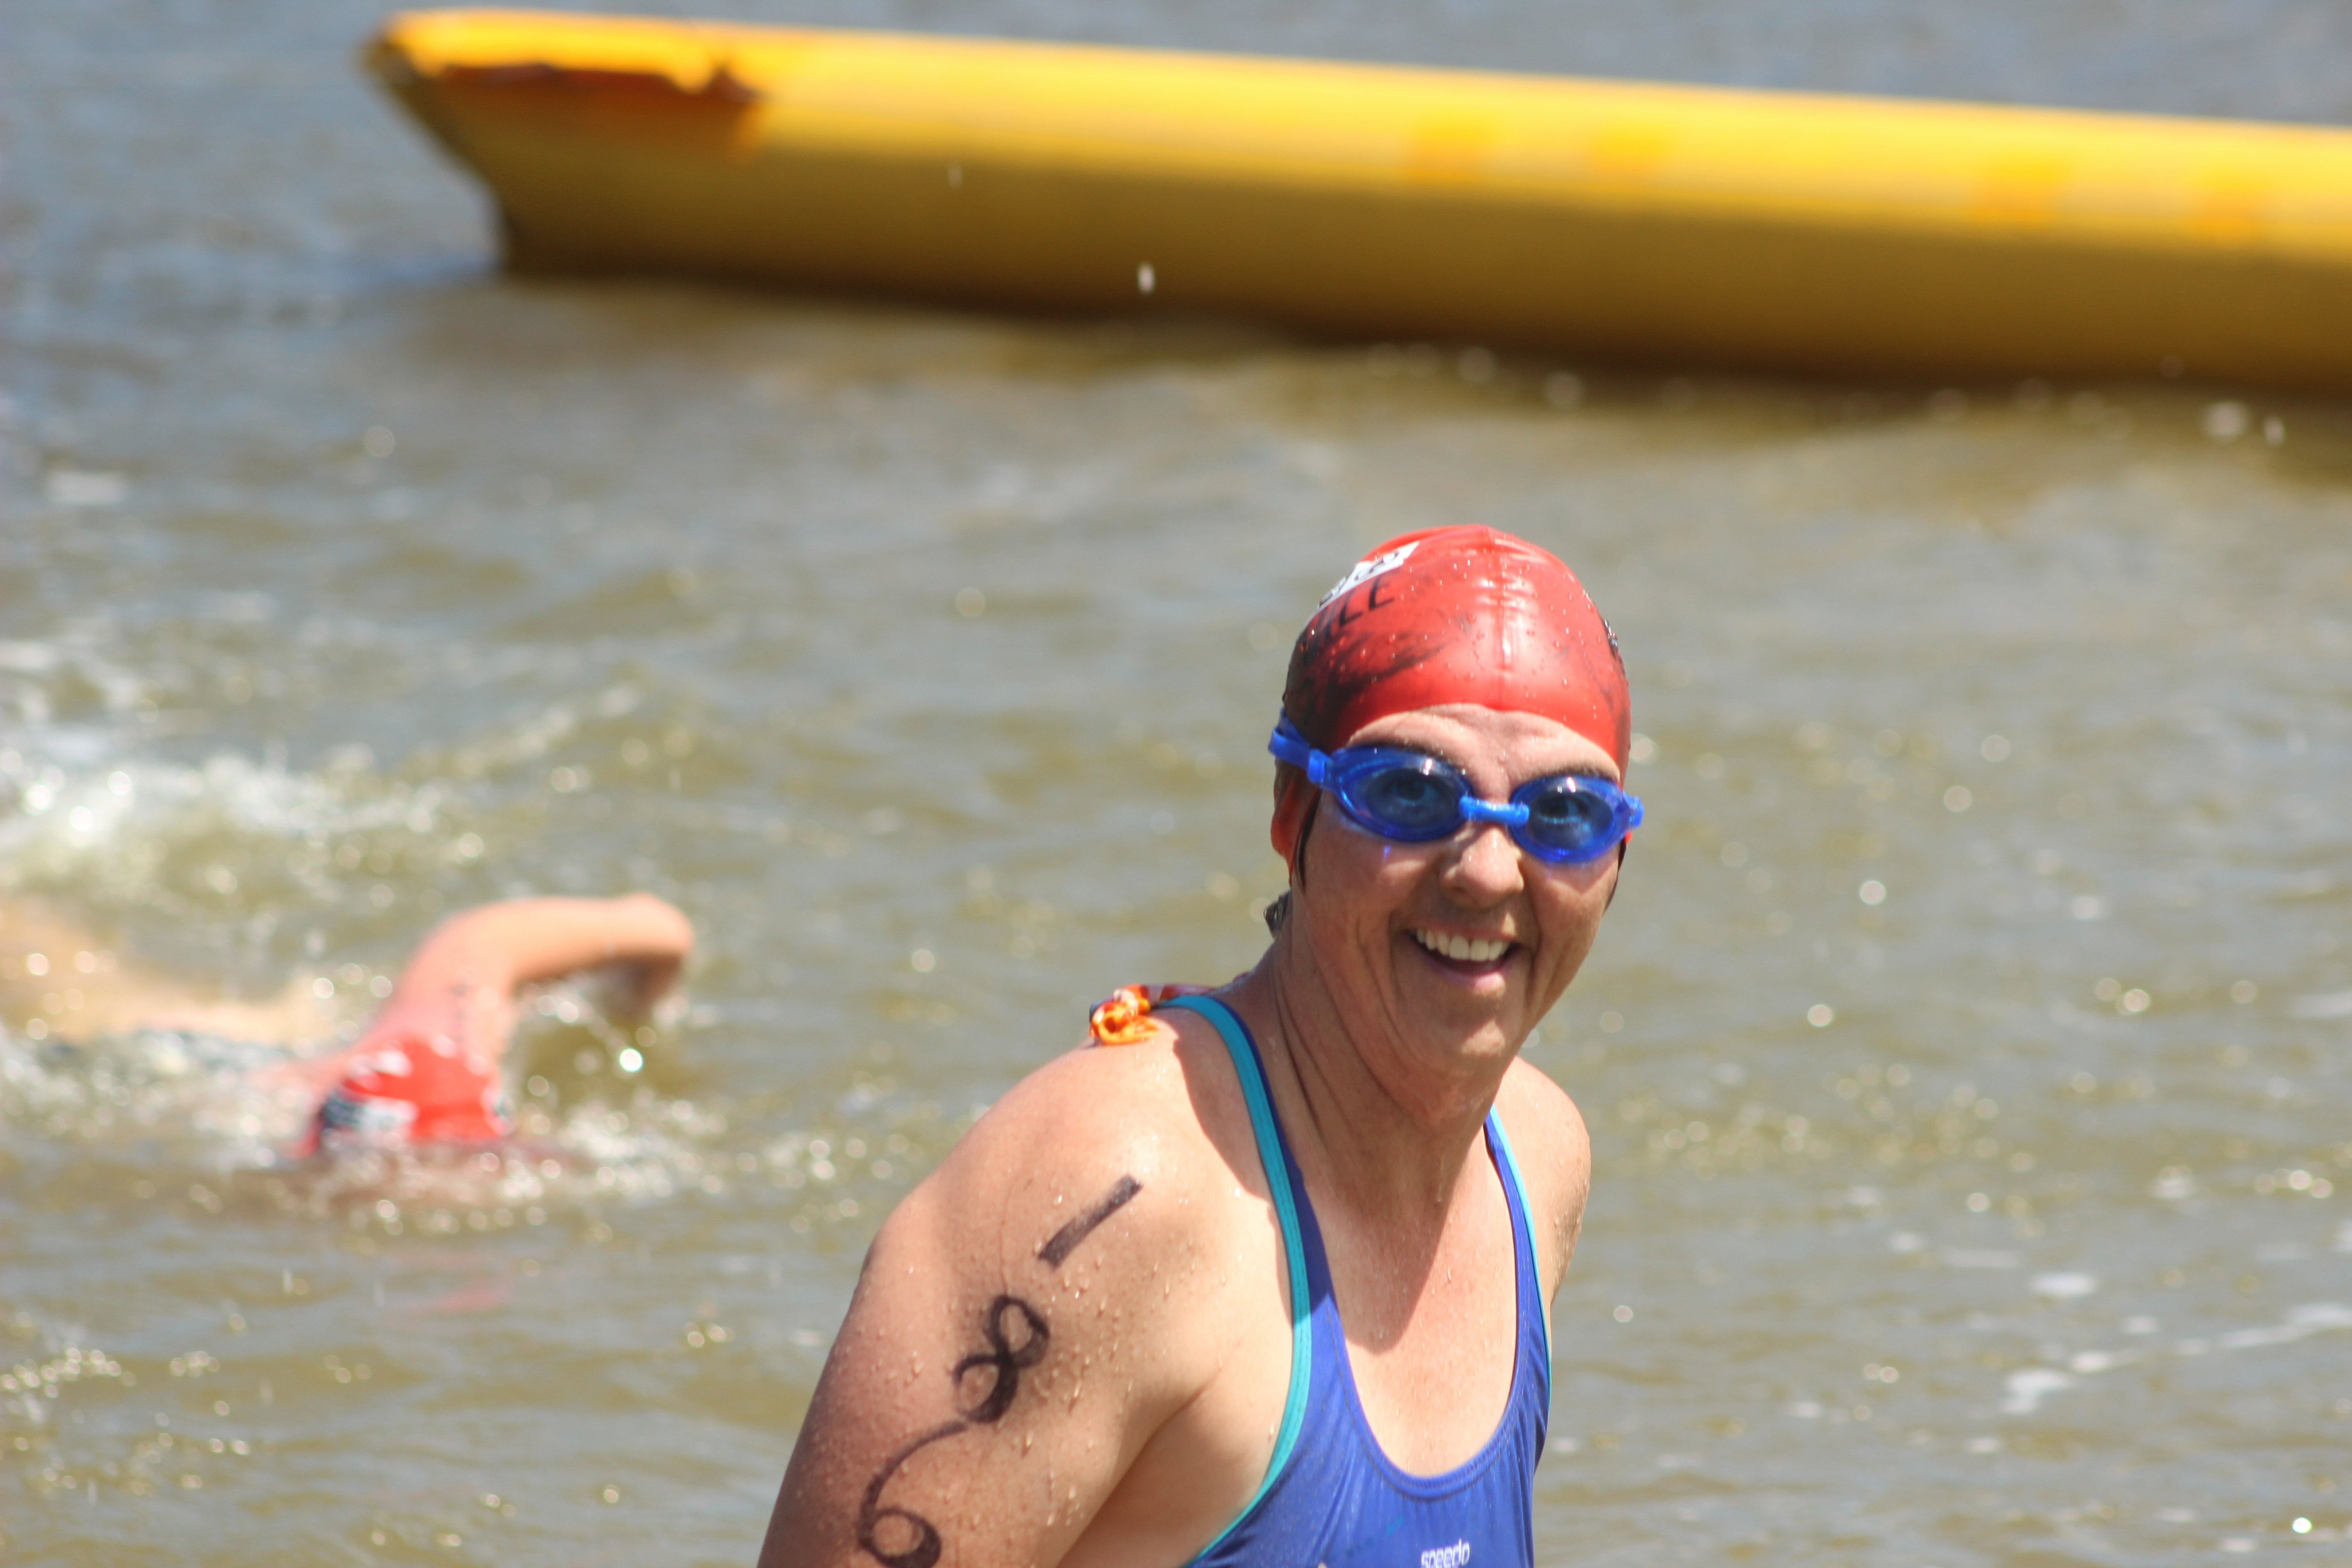 cd994dd7457e Liz paid for the goggles that she used and reviewed here. We have since  supplied her with a few pairs so she can continue her swimming with sight  in case ...